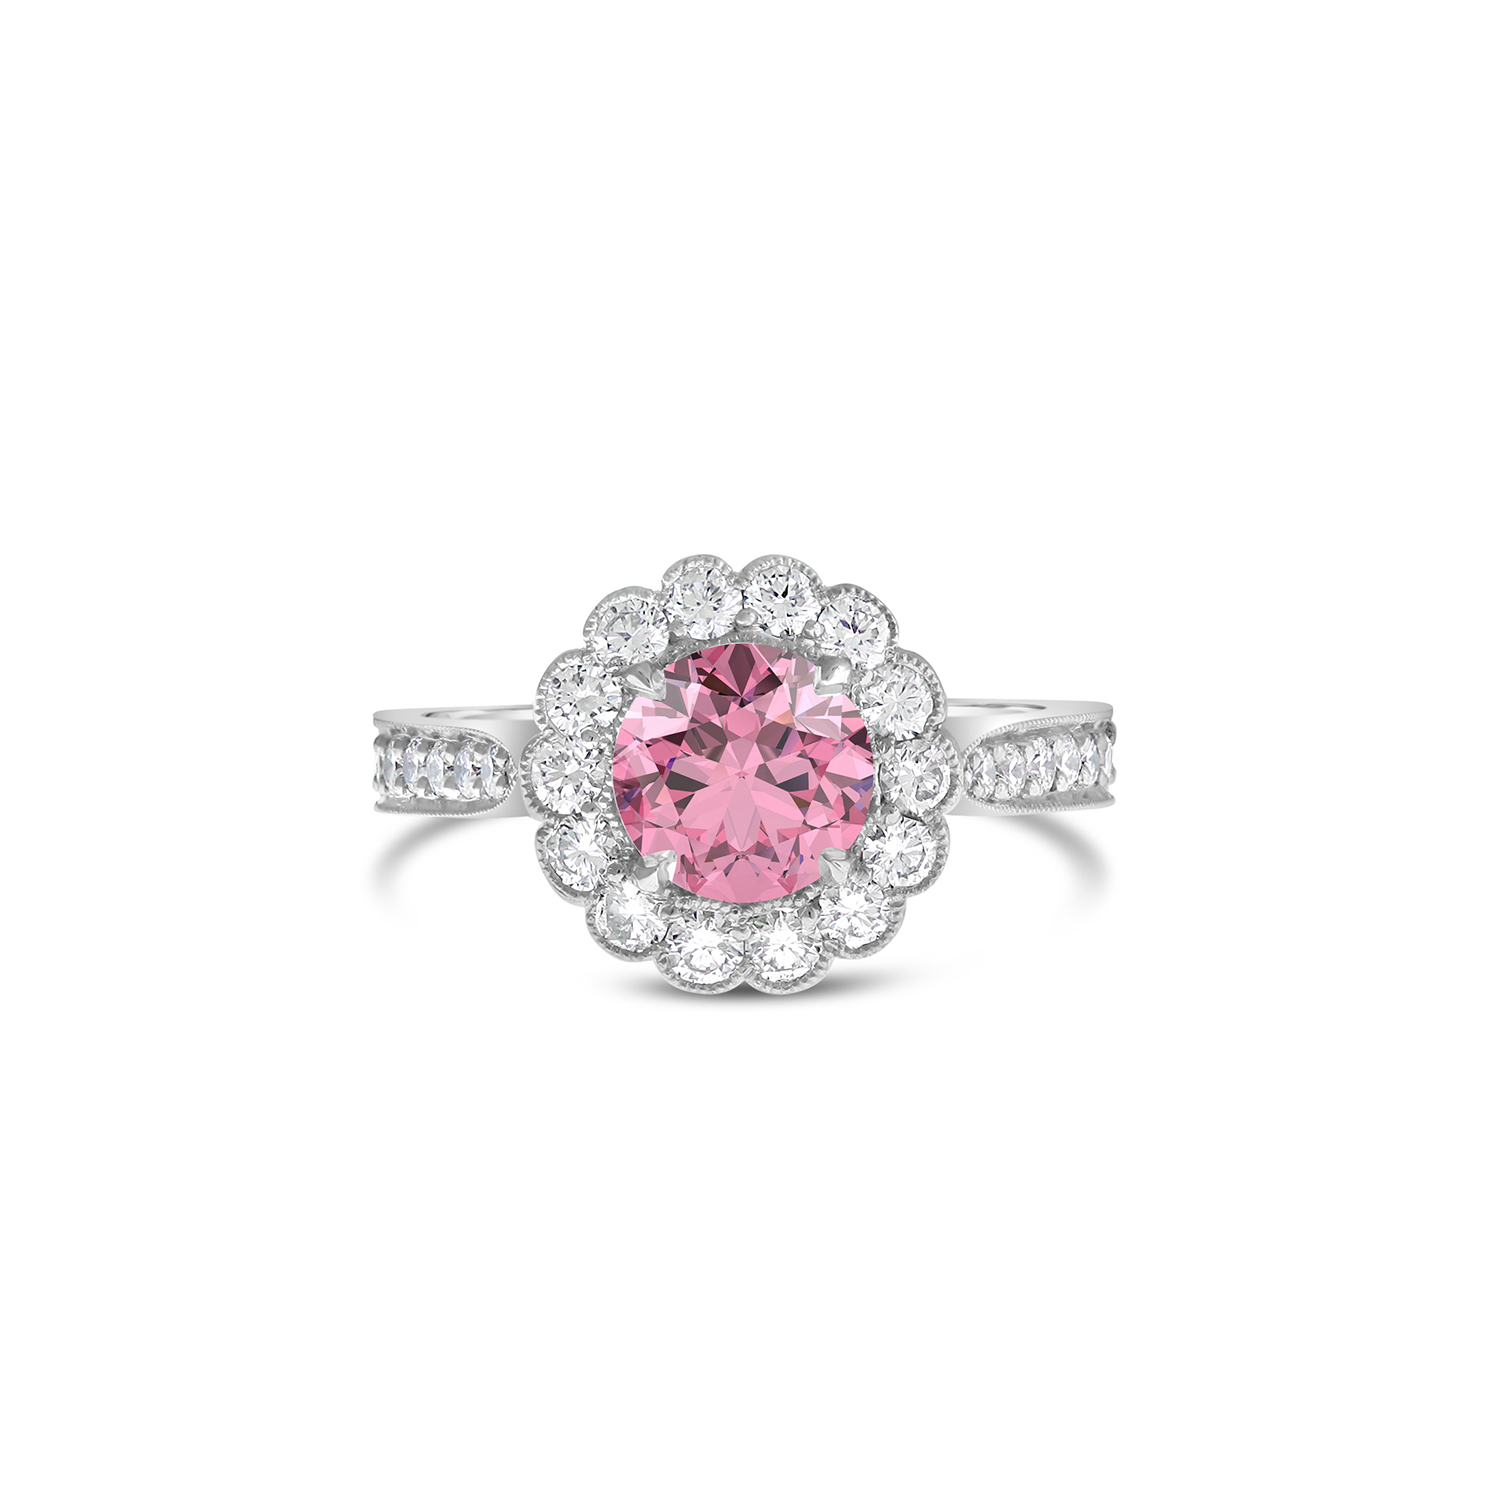 88a86310e2 Pink Sapphire Scalloped Halo Engagement Ring - Fairfax & Roberts